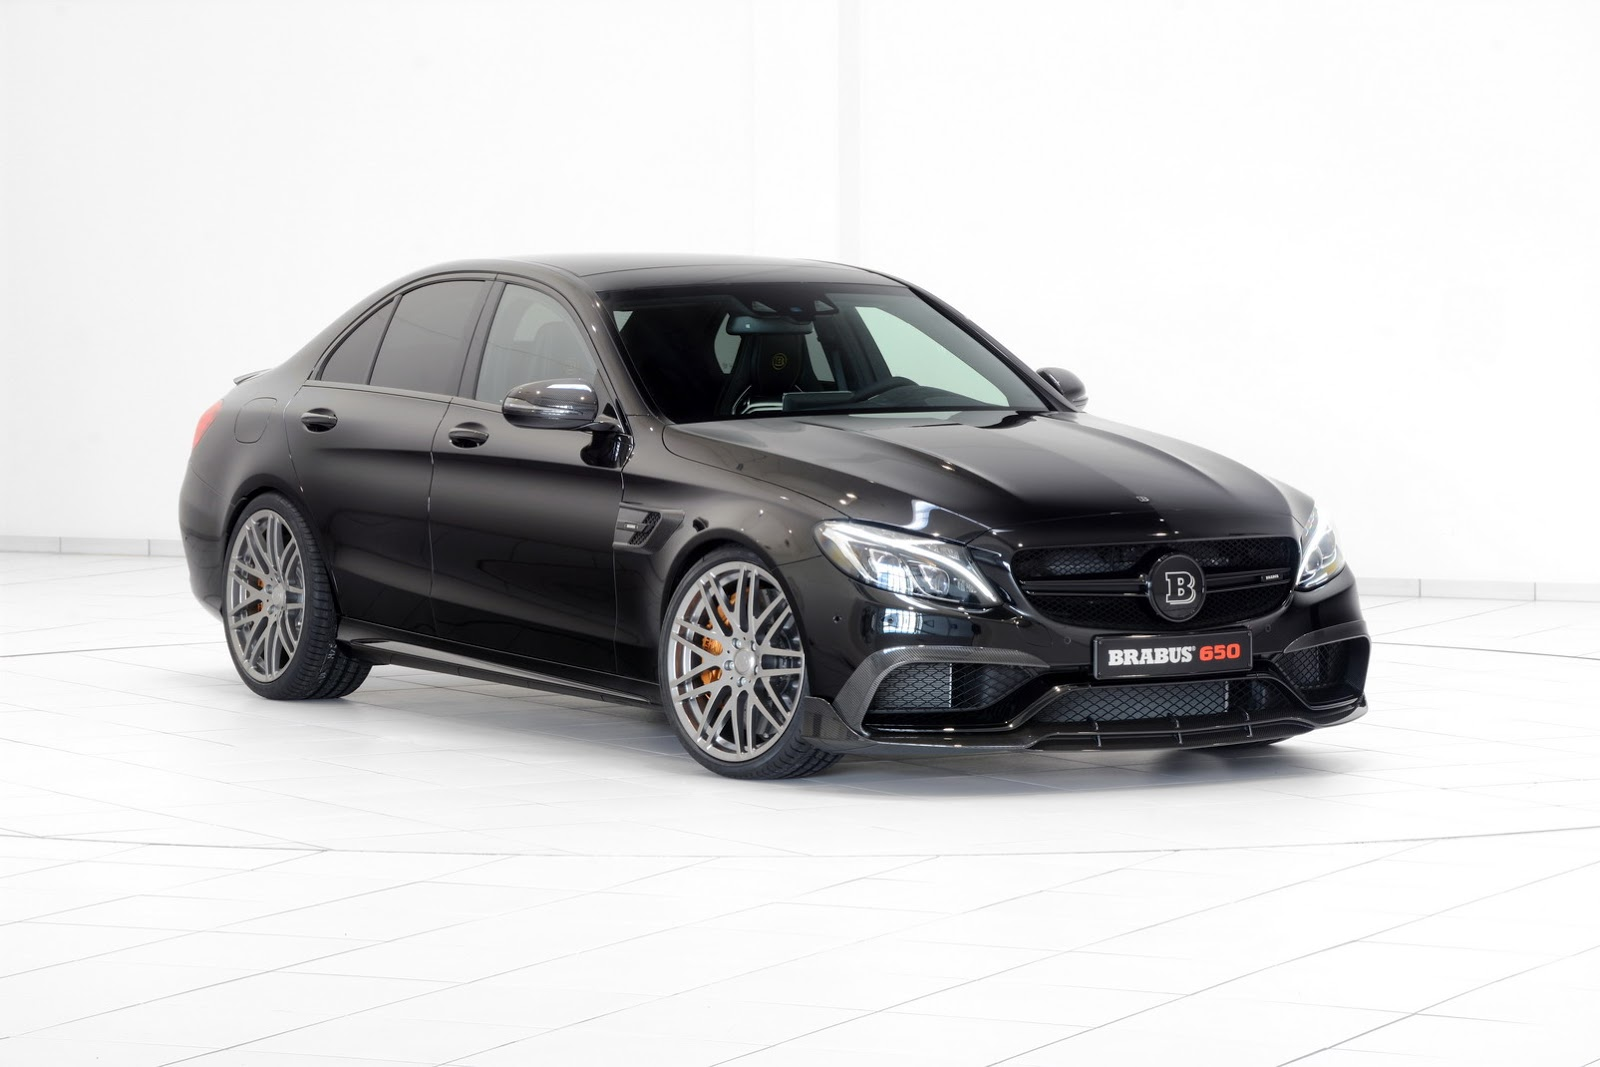 Brabus Mercedes Amg C63 S Enter Supercar Territory With